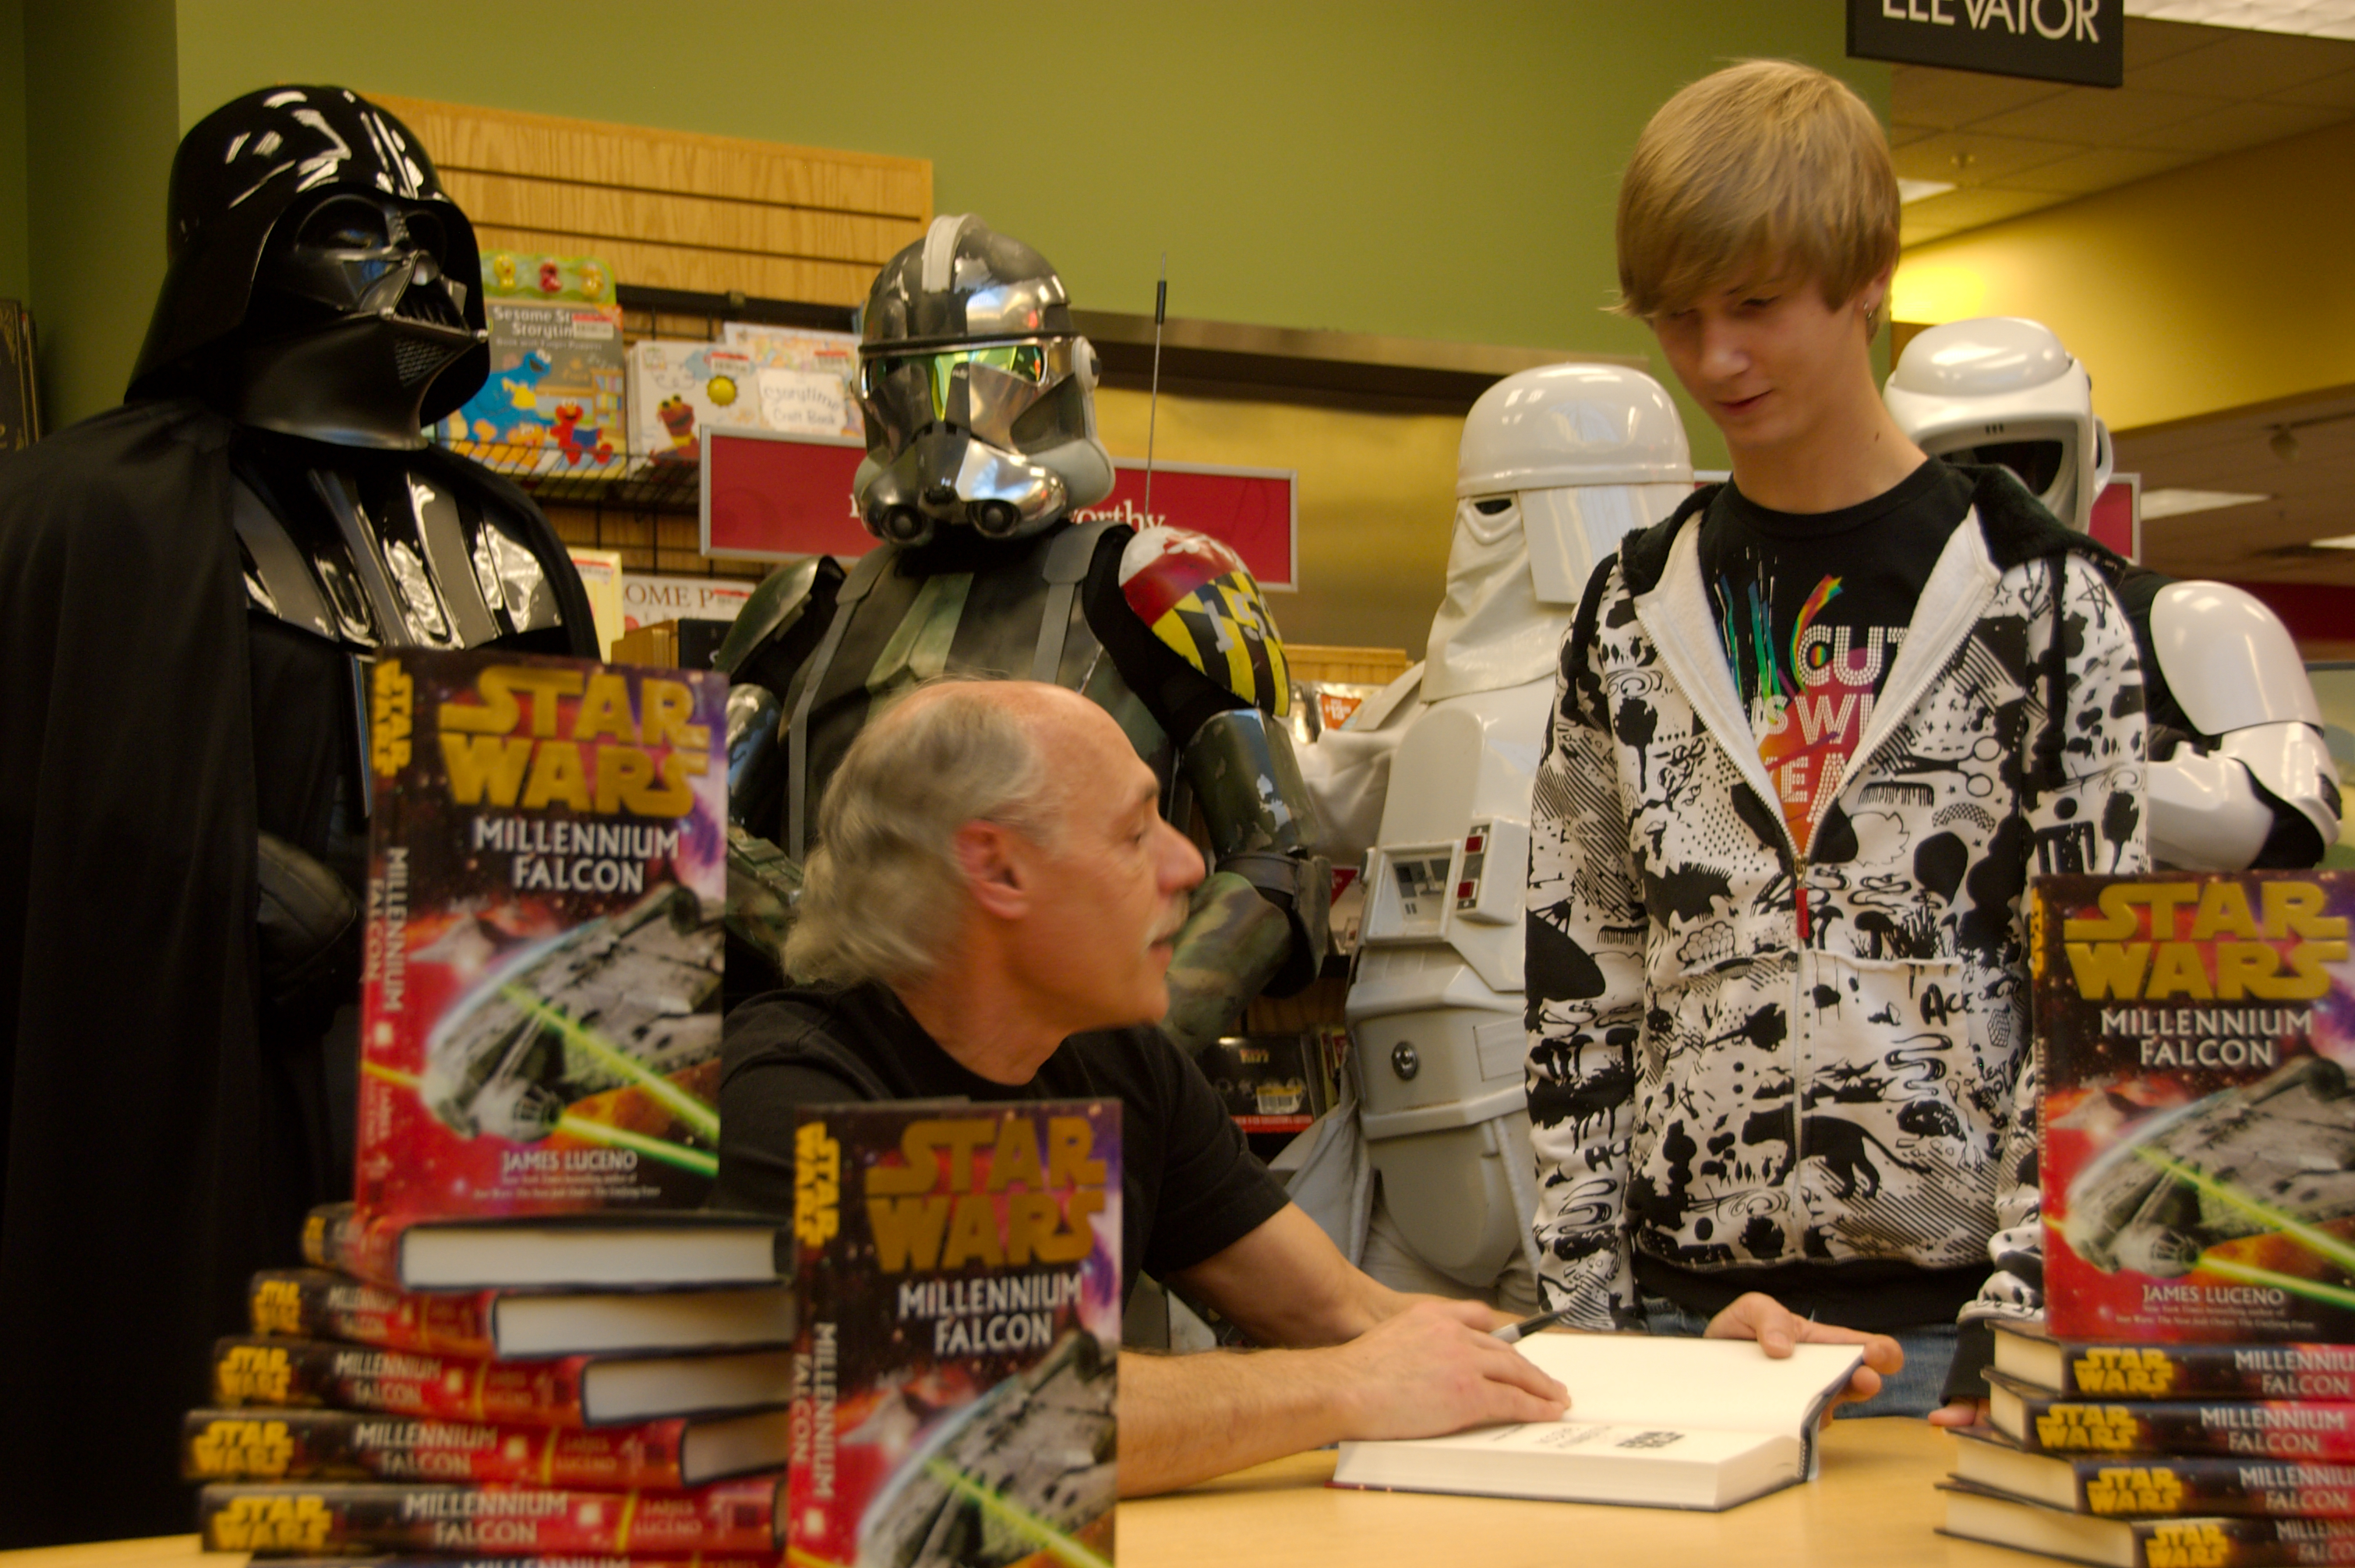 DSC_6567.jpg - Commander Gree impatiently awaits his turn for a signed copy of the Millenium Falcon book